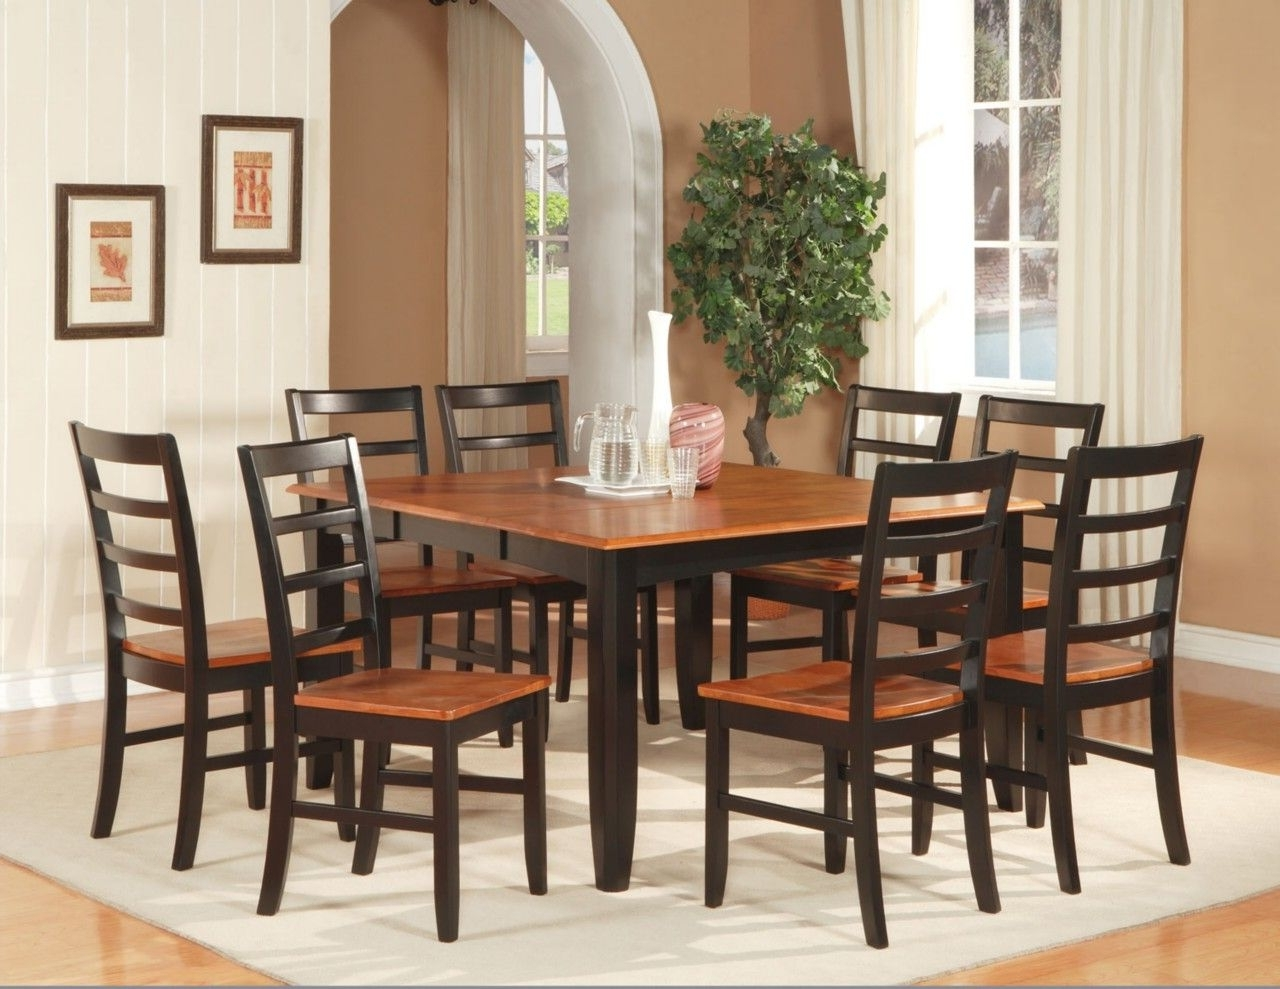 Dining Tables And 8 Chairs Sets Throughout Most Popular Dining Room Excellent Small Dining Room Furniture Sets With Dining (View 7 of 25)